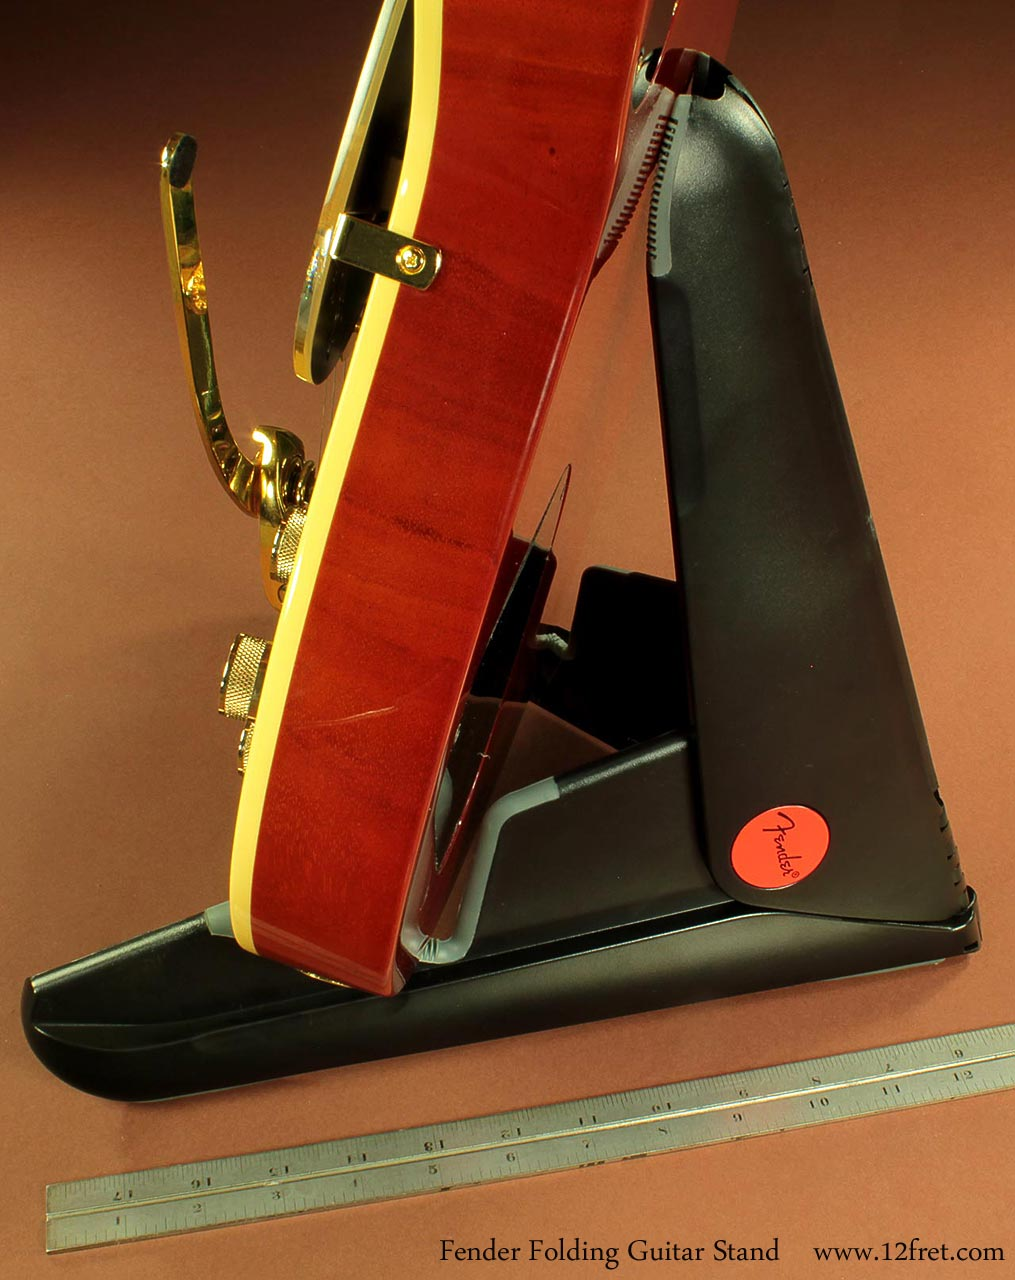 fender-folding-stand-in-use-1